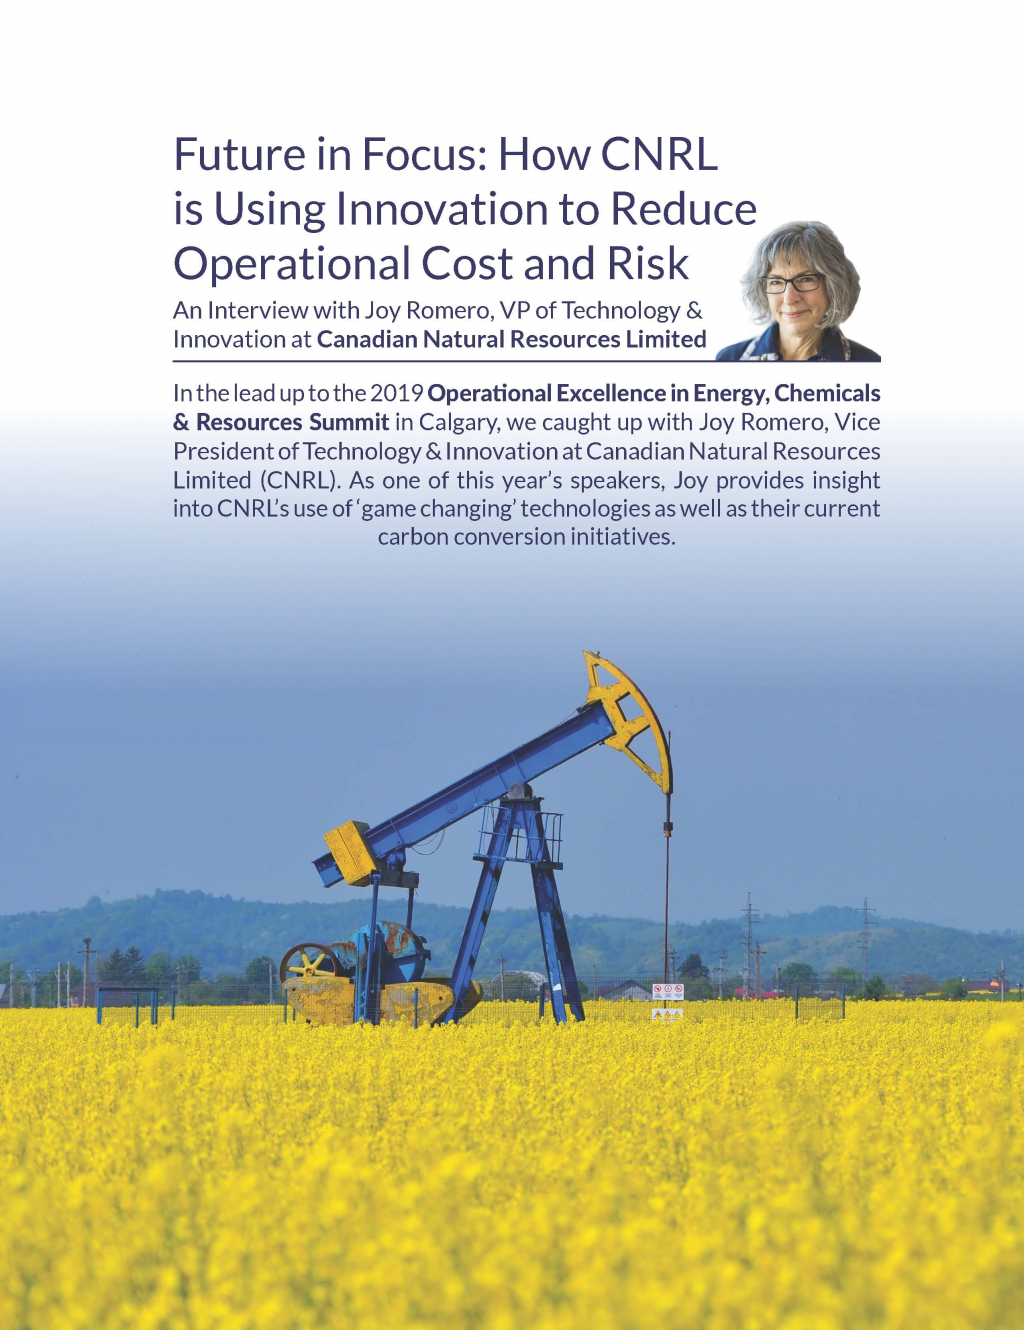 Future in Focus: How CNRL is Using Innovation to Reduce Operational Cost and Risk